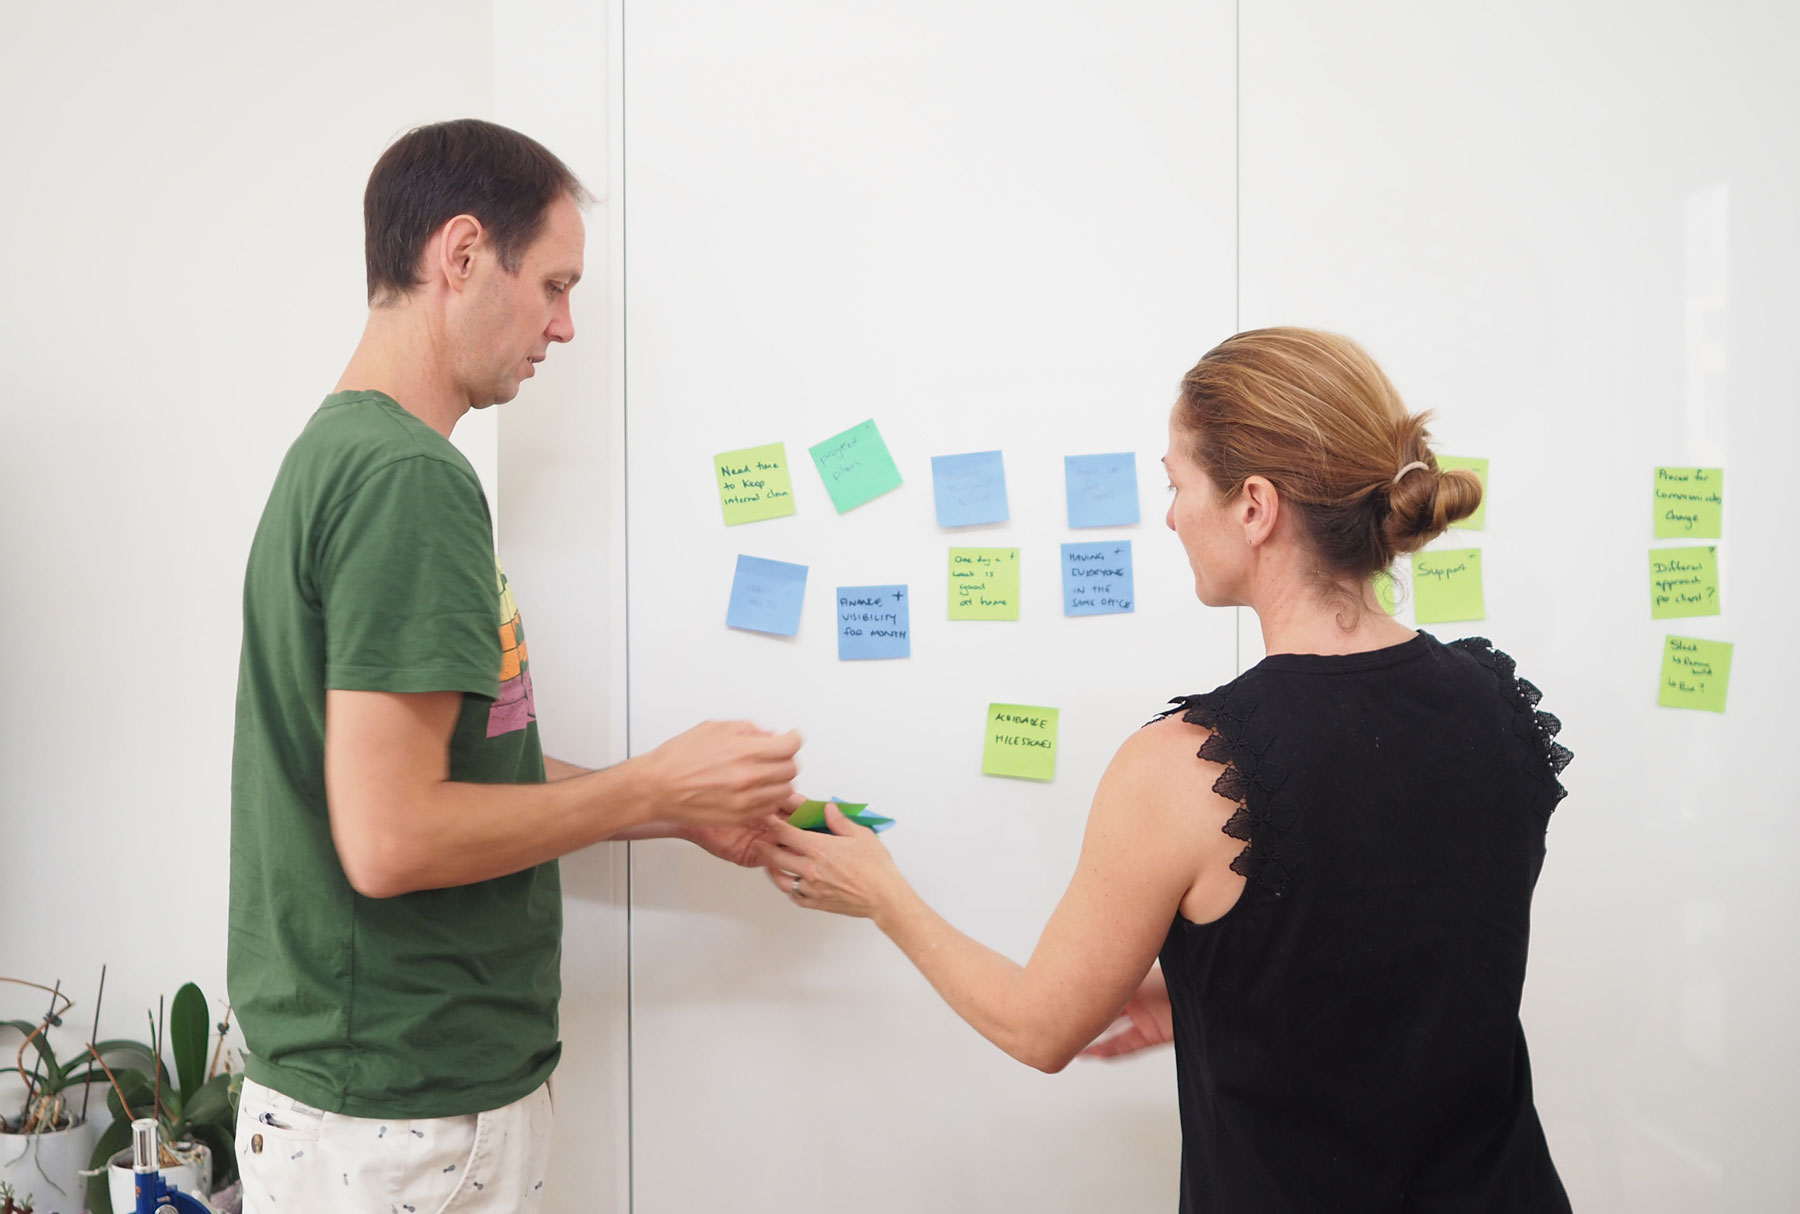 Two people working together on a post-it board